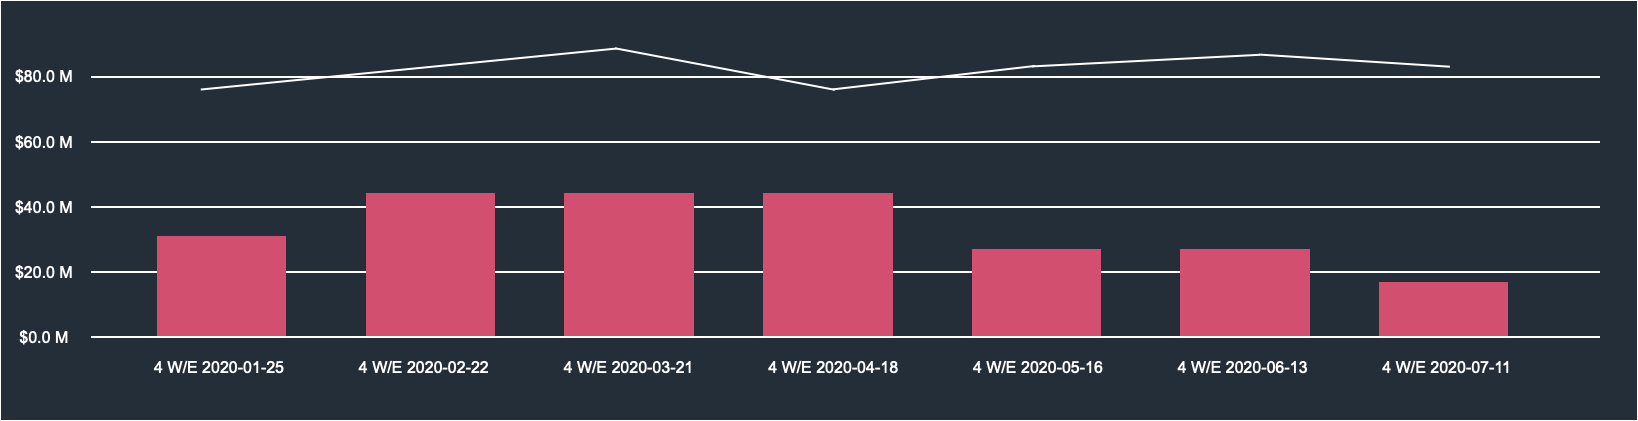 Sales by Period example from Category and Brand Trend Report